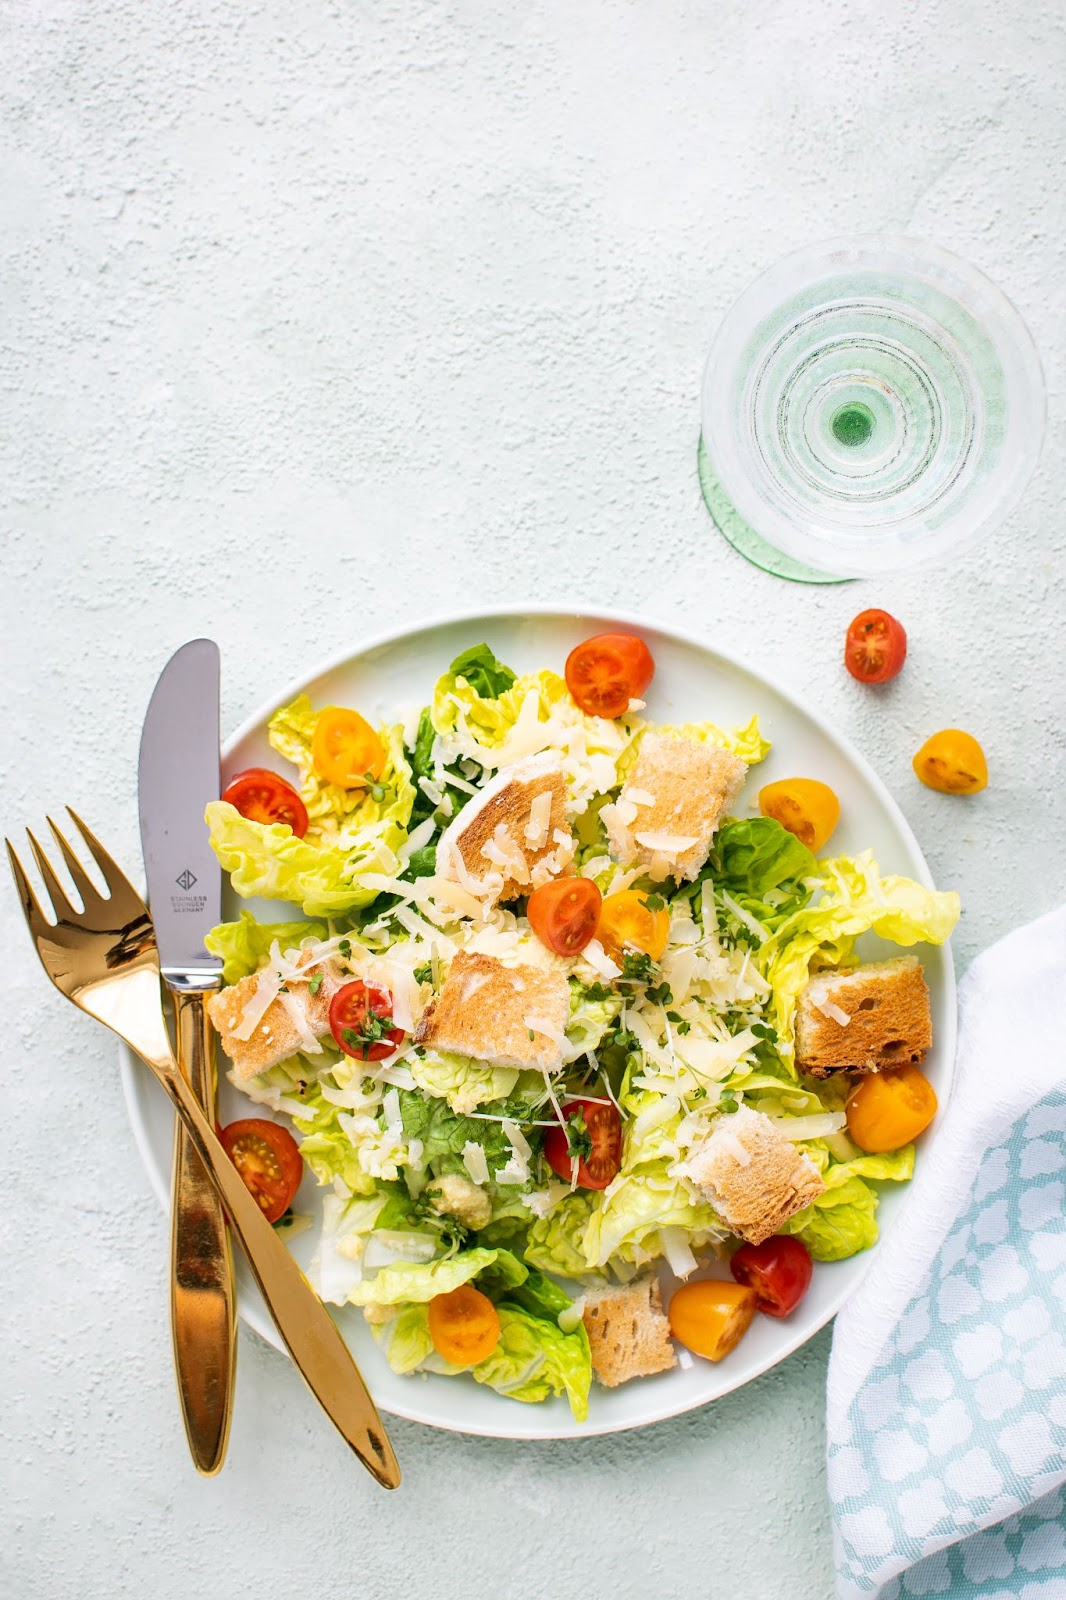 Image of a colorful salad.